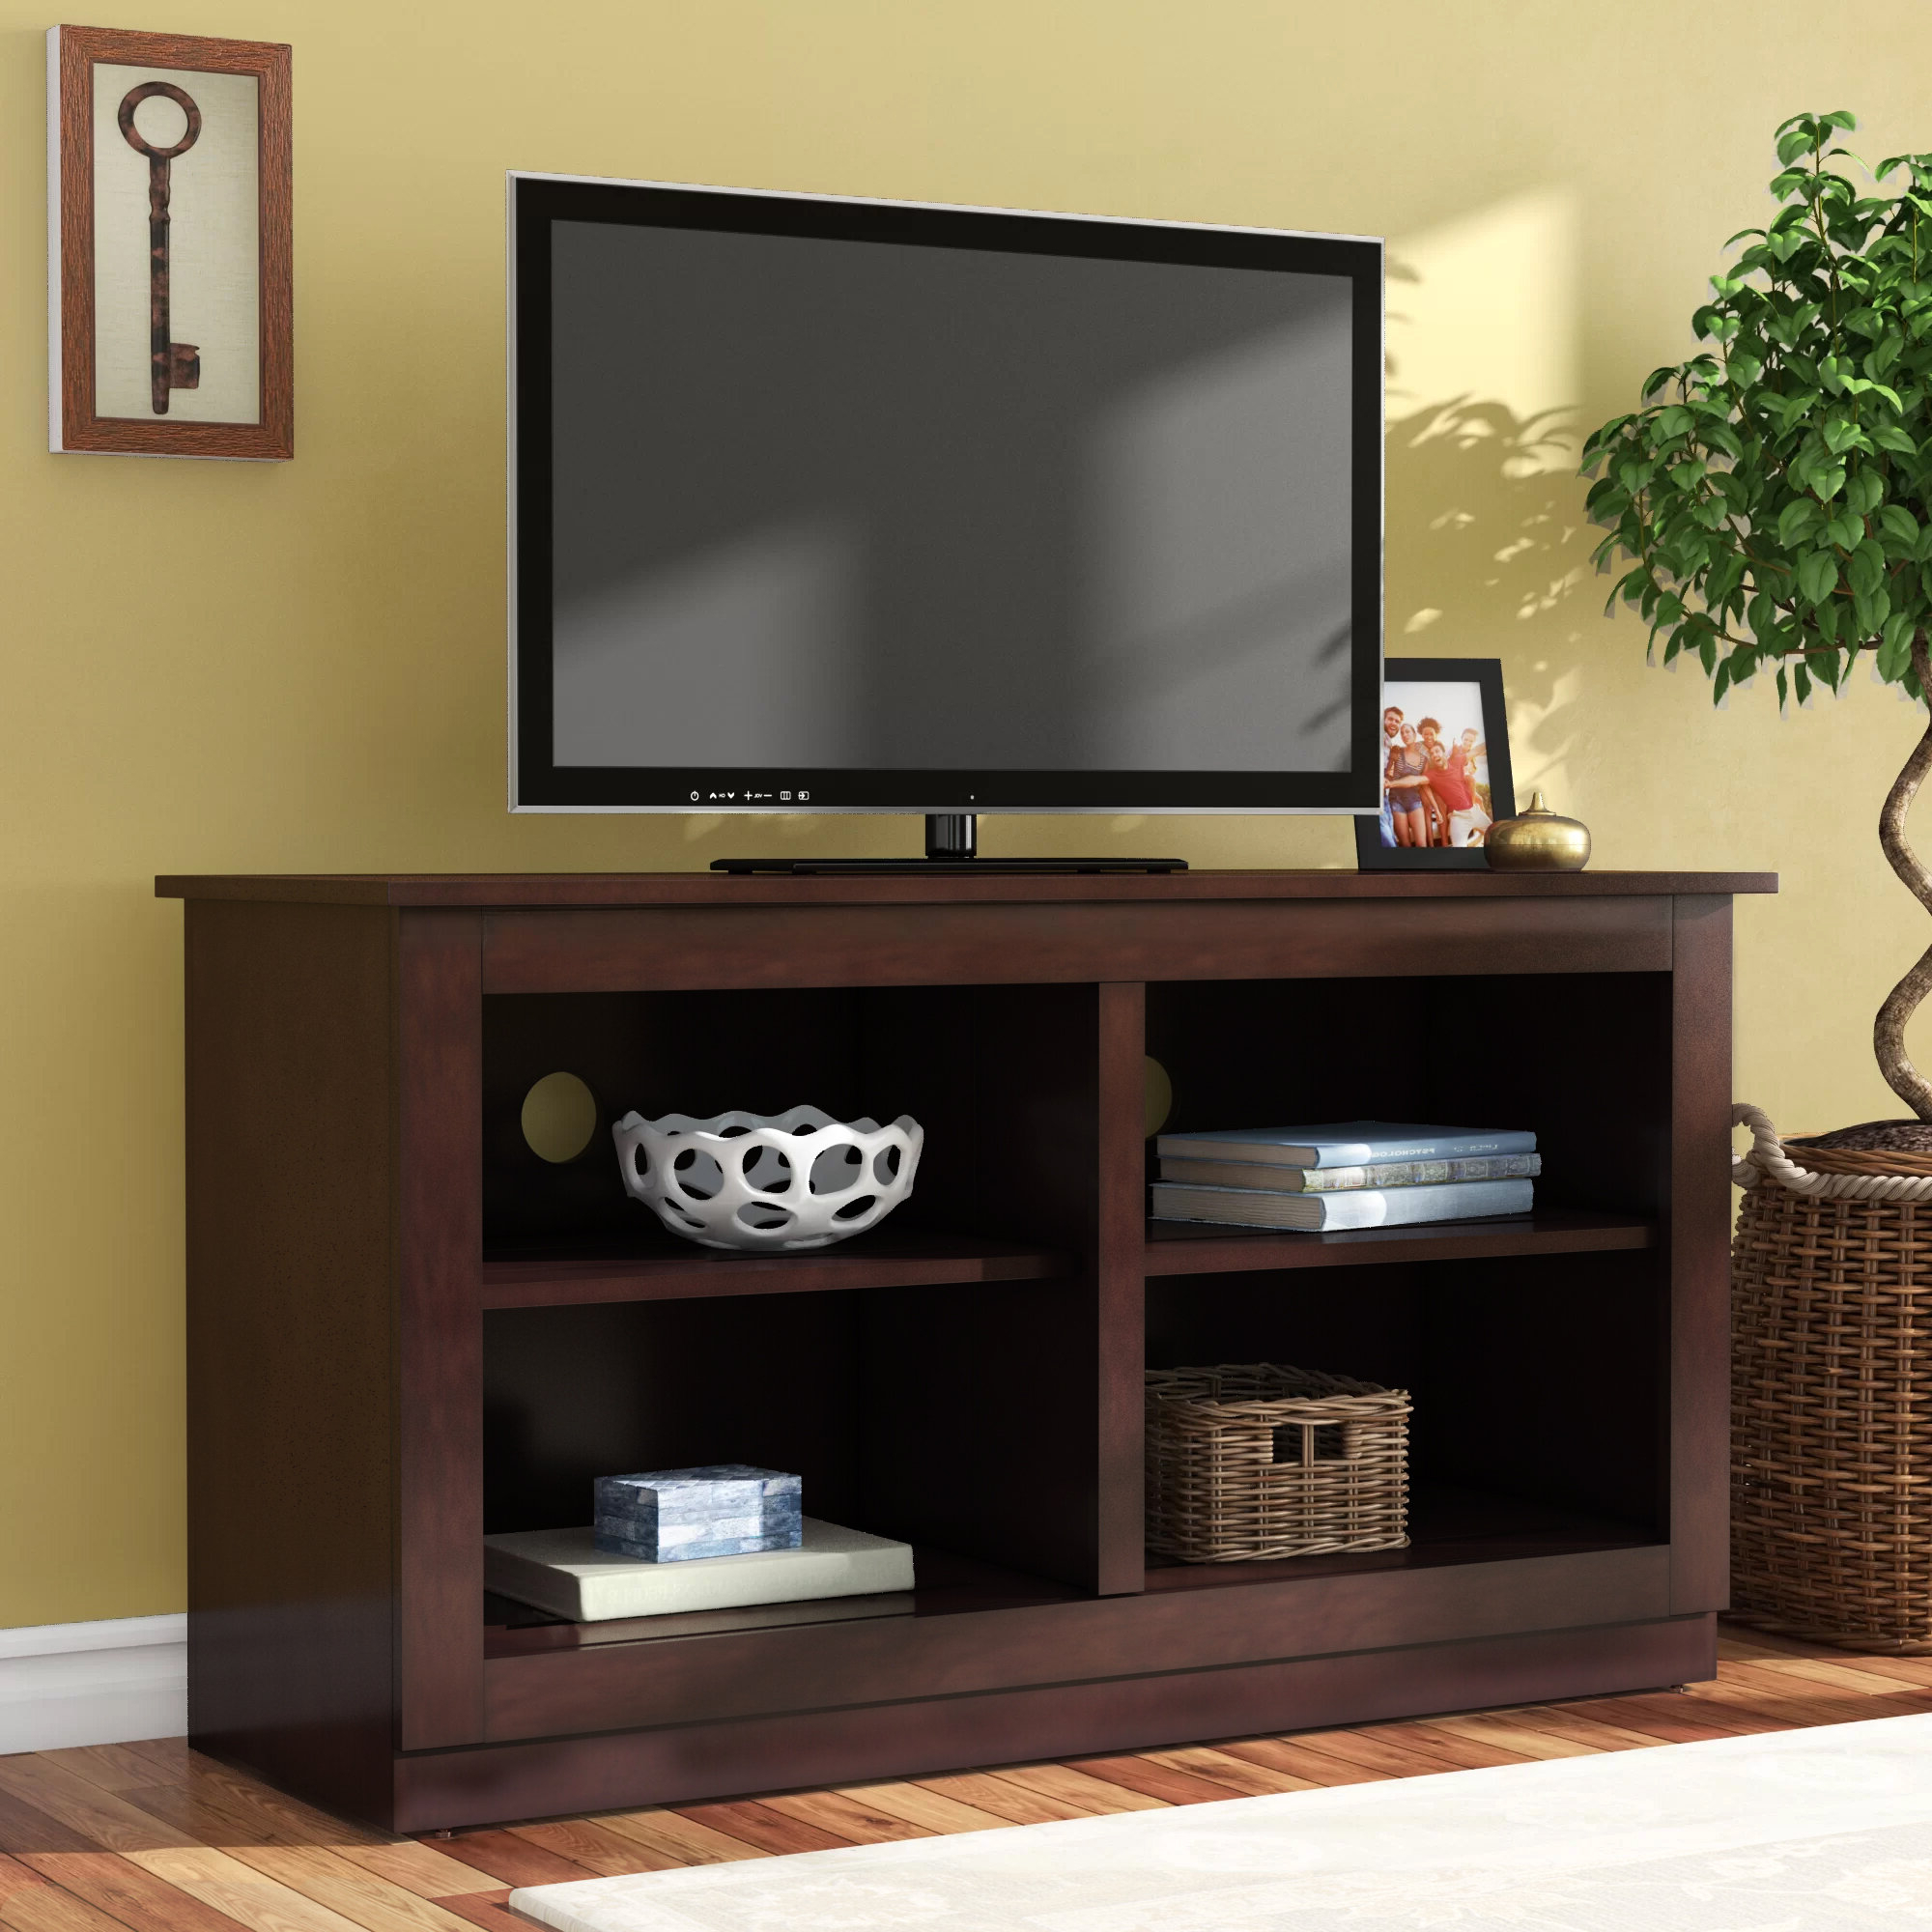 "Andover Mills Xochitl Tv Stand For Tvs Up To 42"" Intended For Ericka Tv Stands For Tvs Up To 42"" (View 8 of 20)"